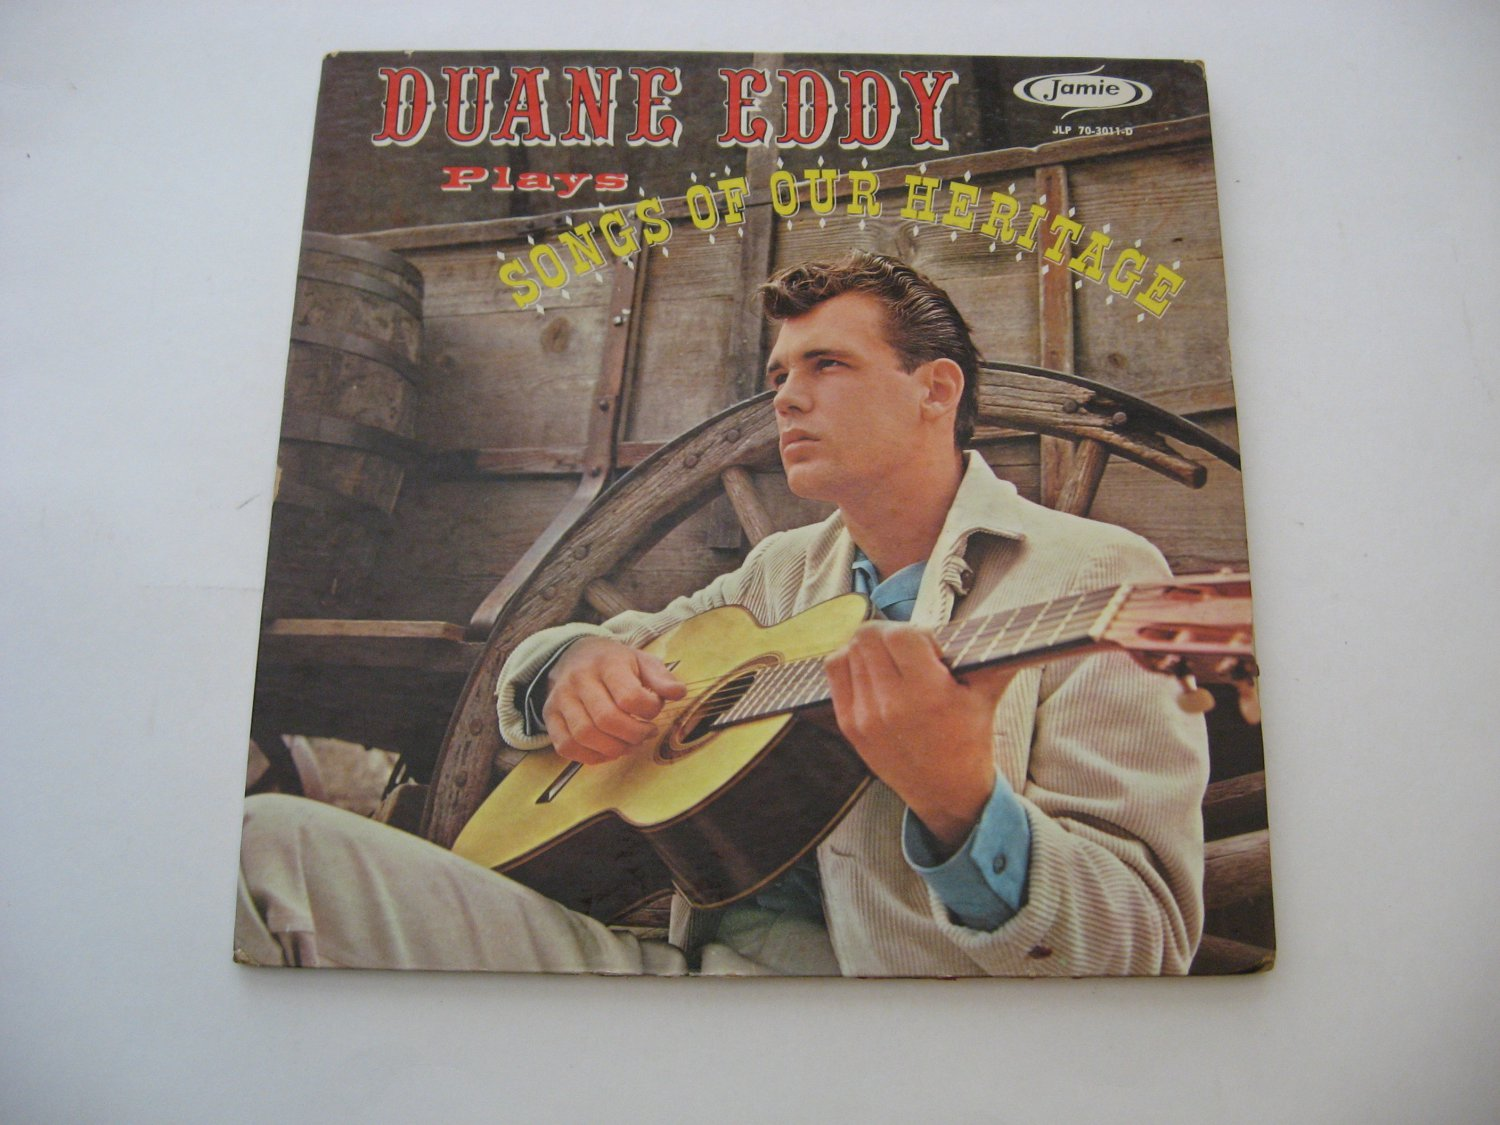 Duane Eddy - Plays Songs Of Our Heritage - With Poster - Circa 1960